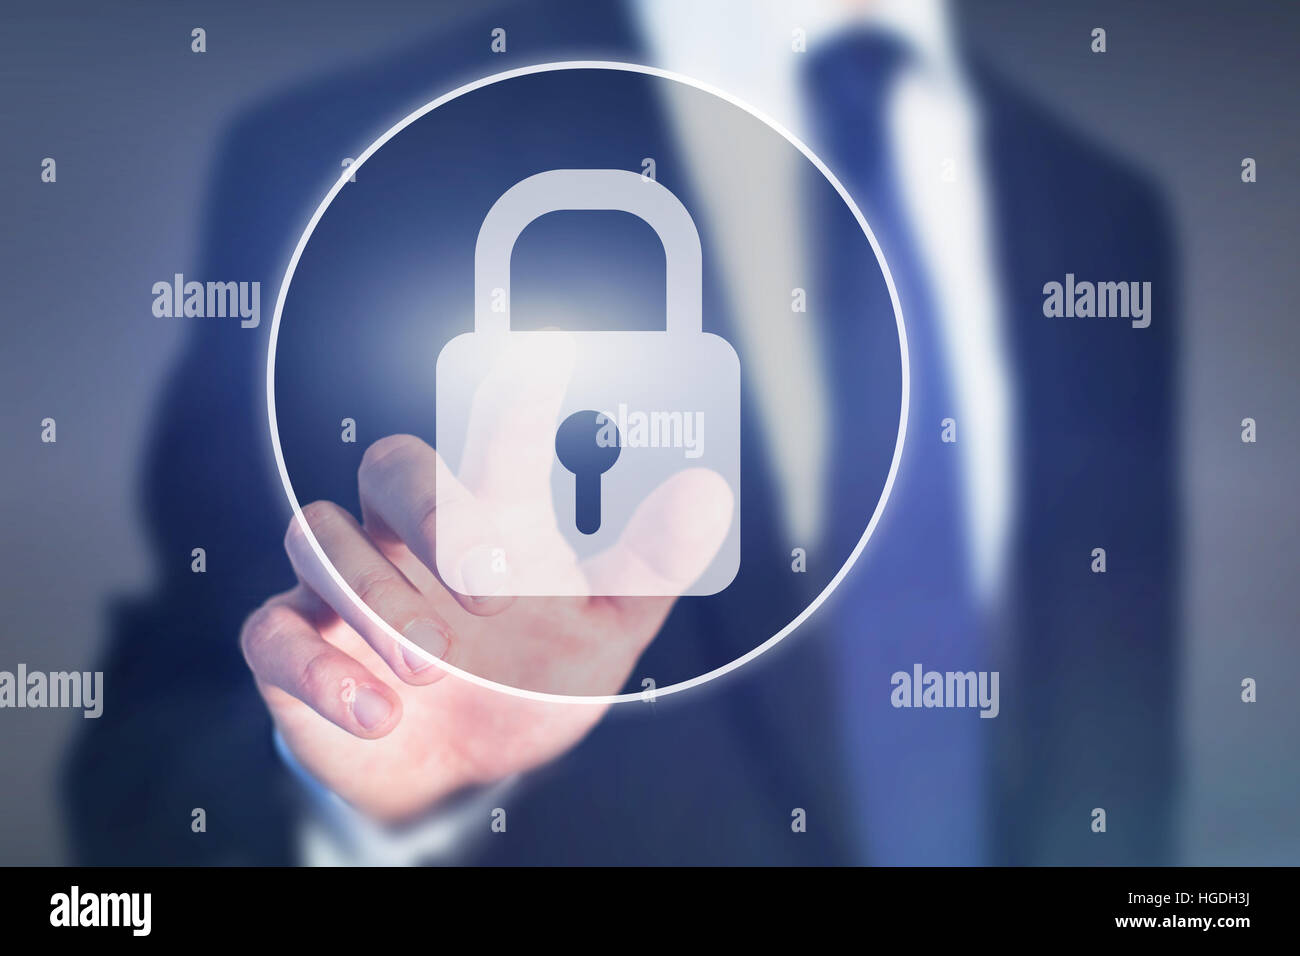 internet data security concept - Stock Image